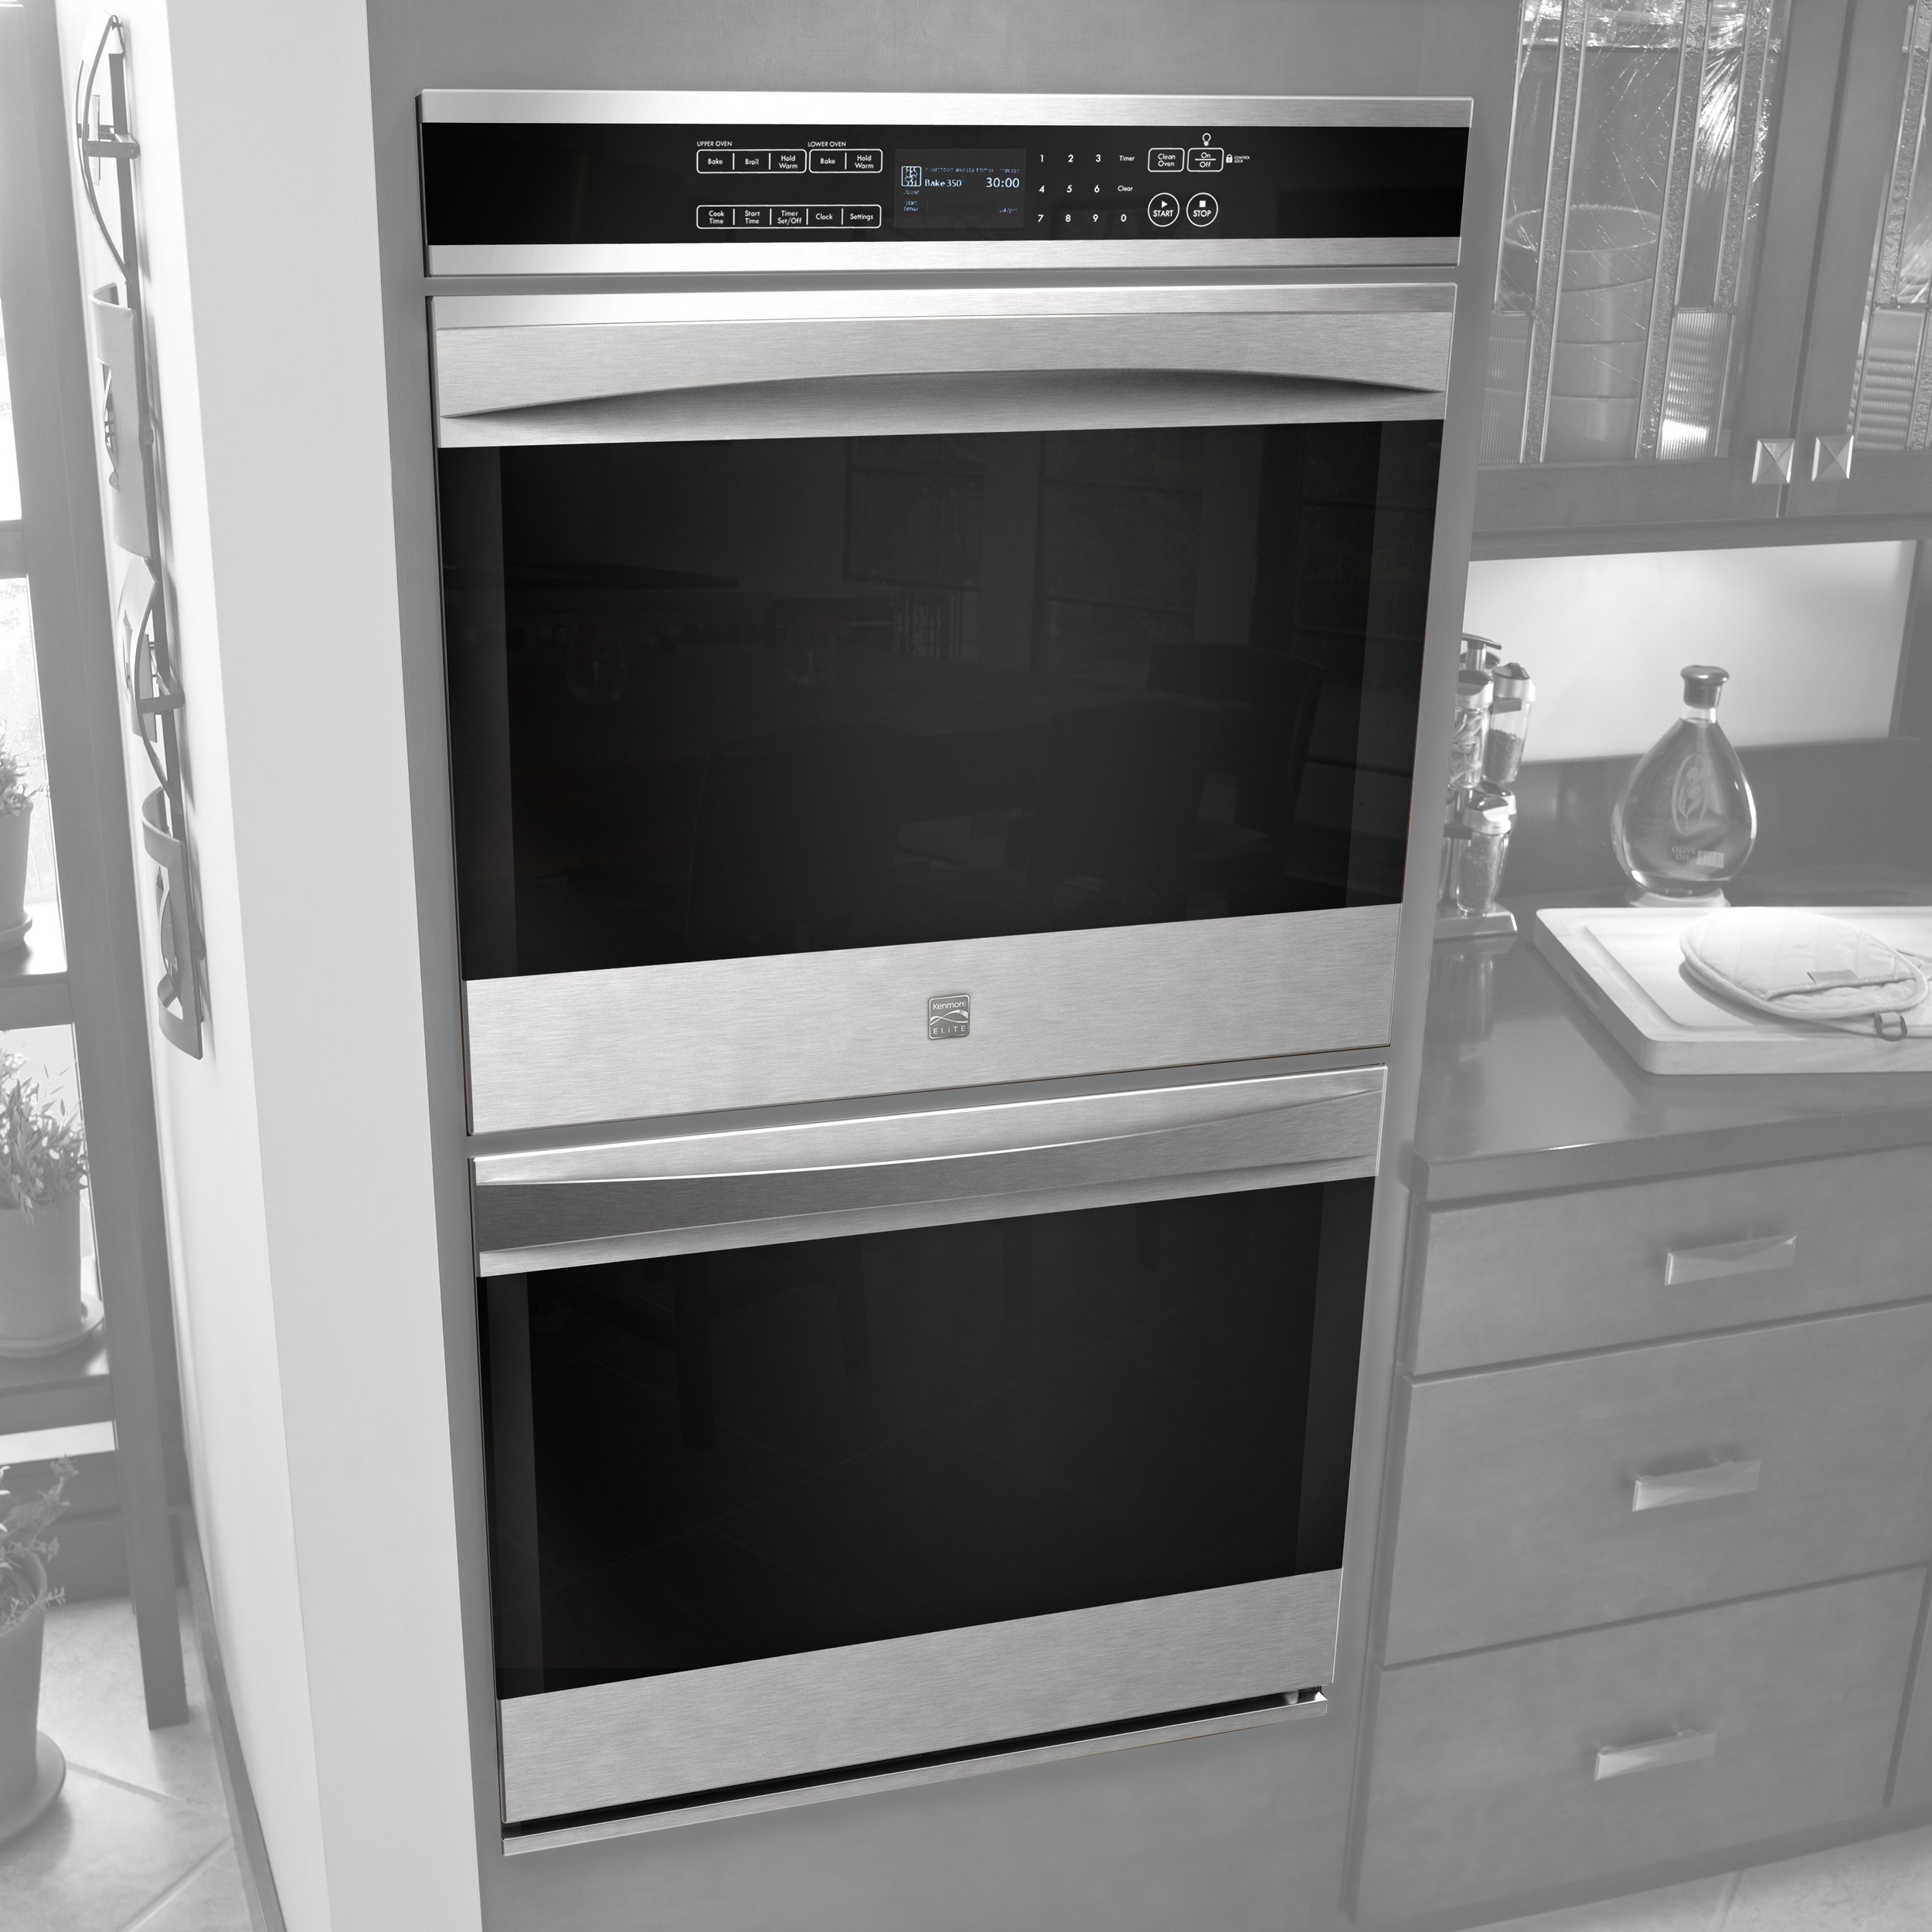 the_wieland_initiative_kenmore_home_appliance_suite_built_in_oven.jpg